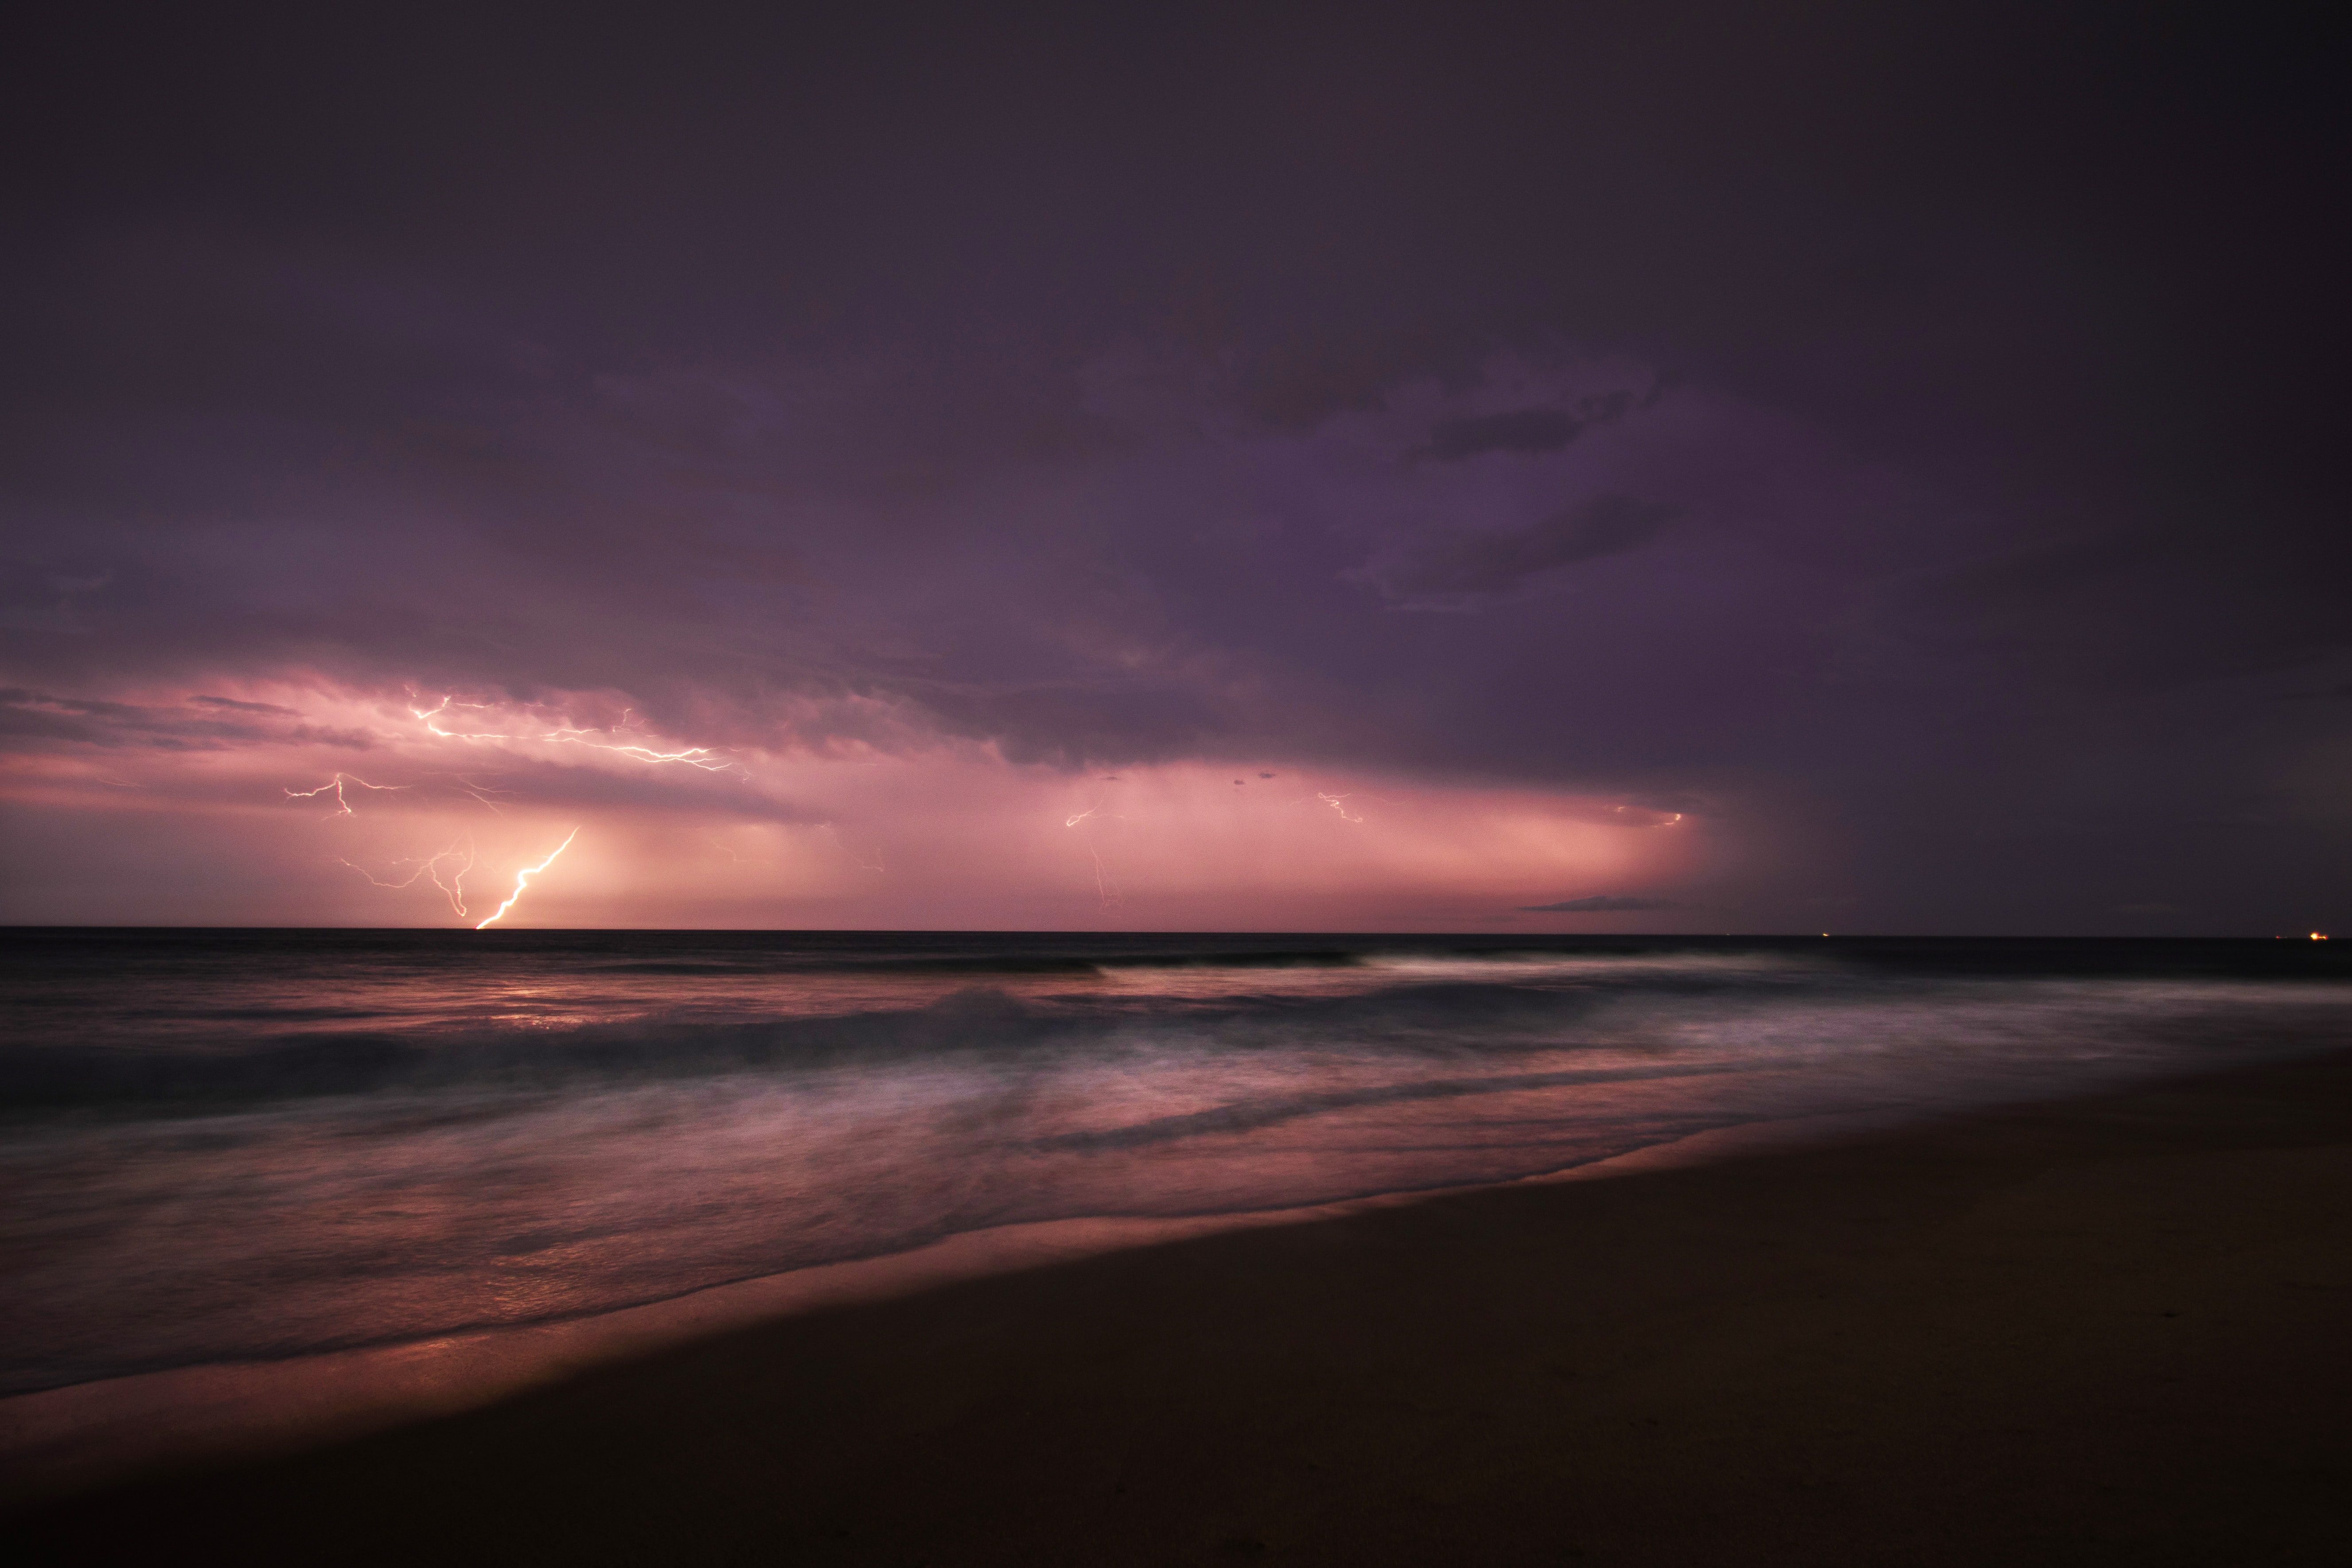 A bolt of lightning erupts from the clouds during a purple sunset over the Southern Shores